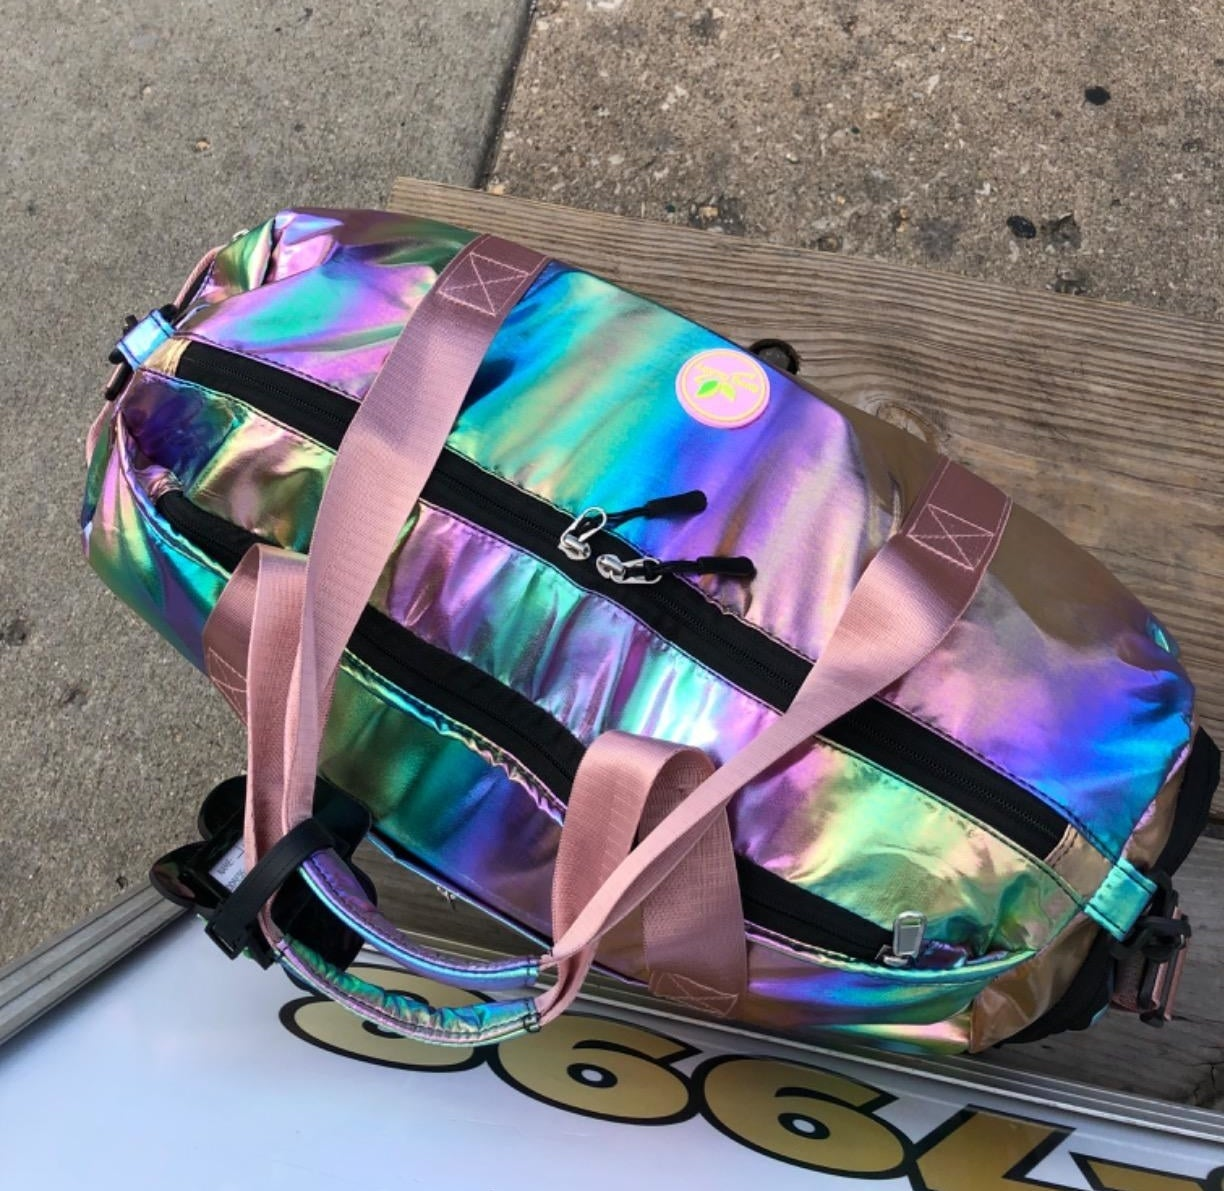 Reviewer photo of an iridescent duffel bag with pink nylon straps